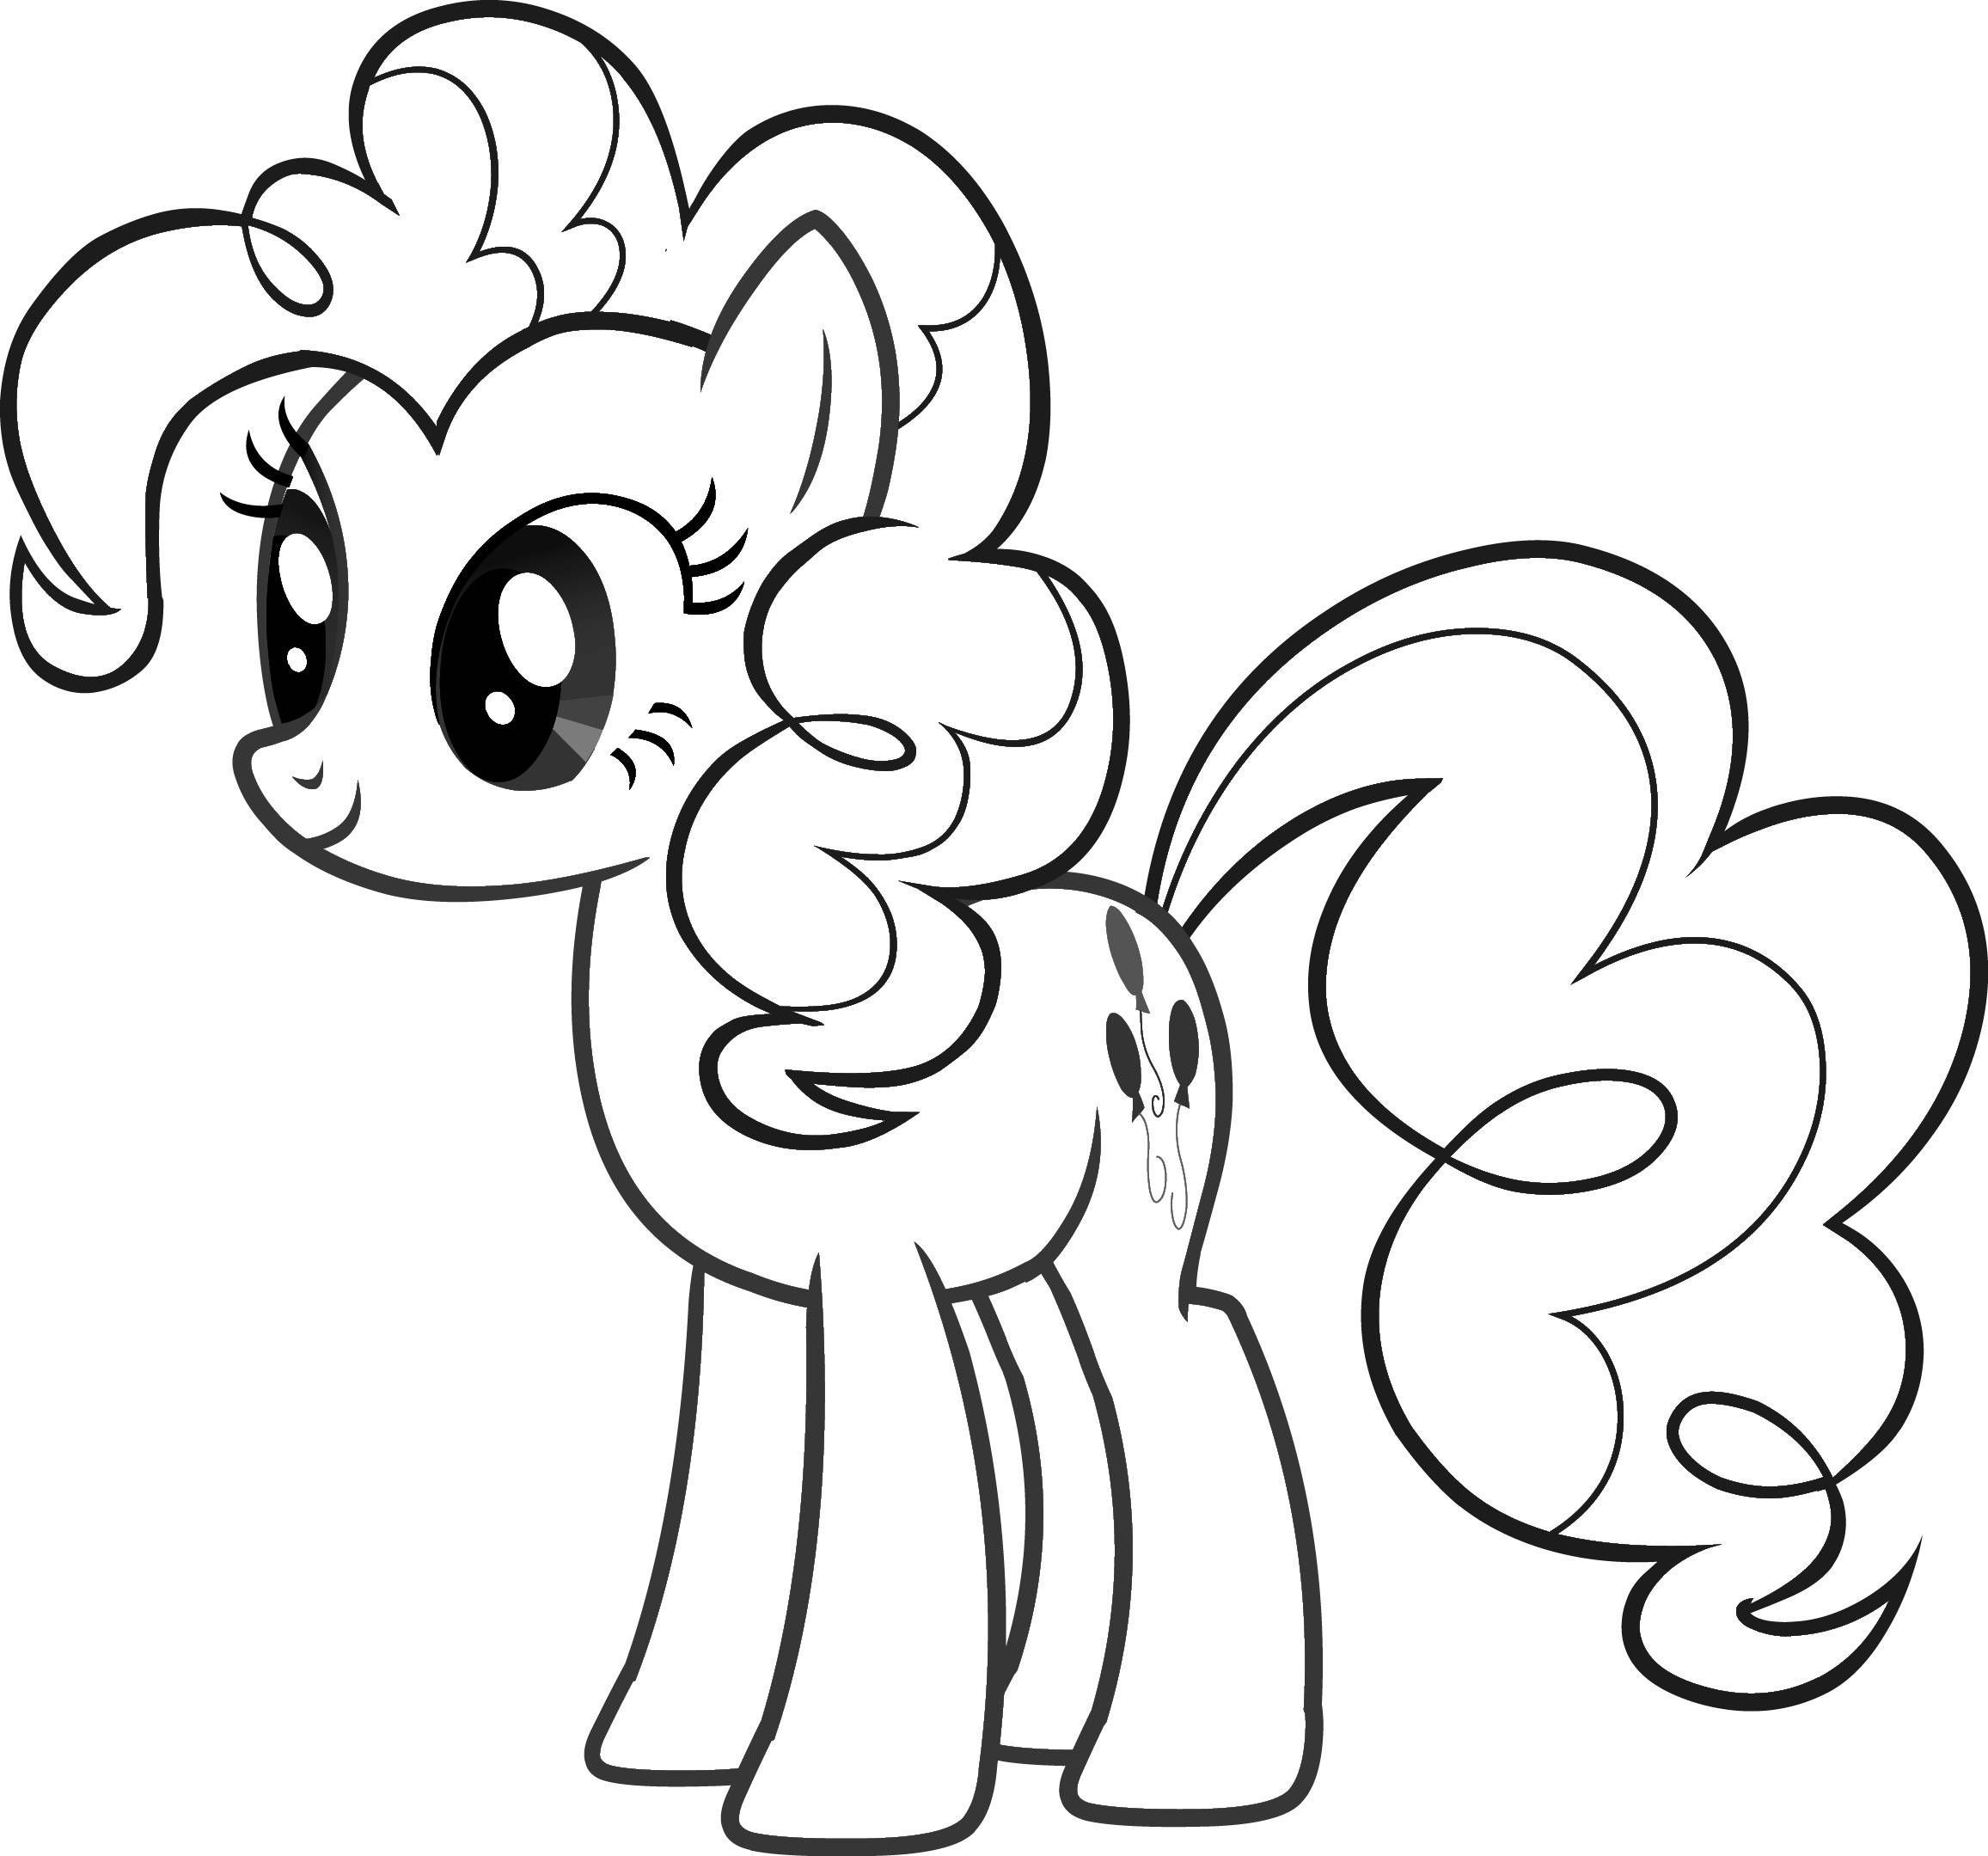 My little pony clipart black and white 3 » Clipart Portal.